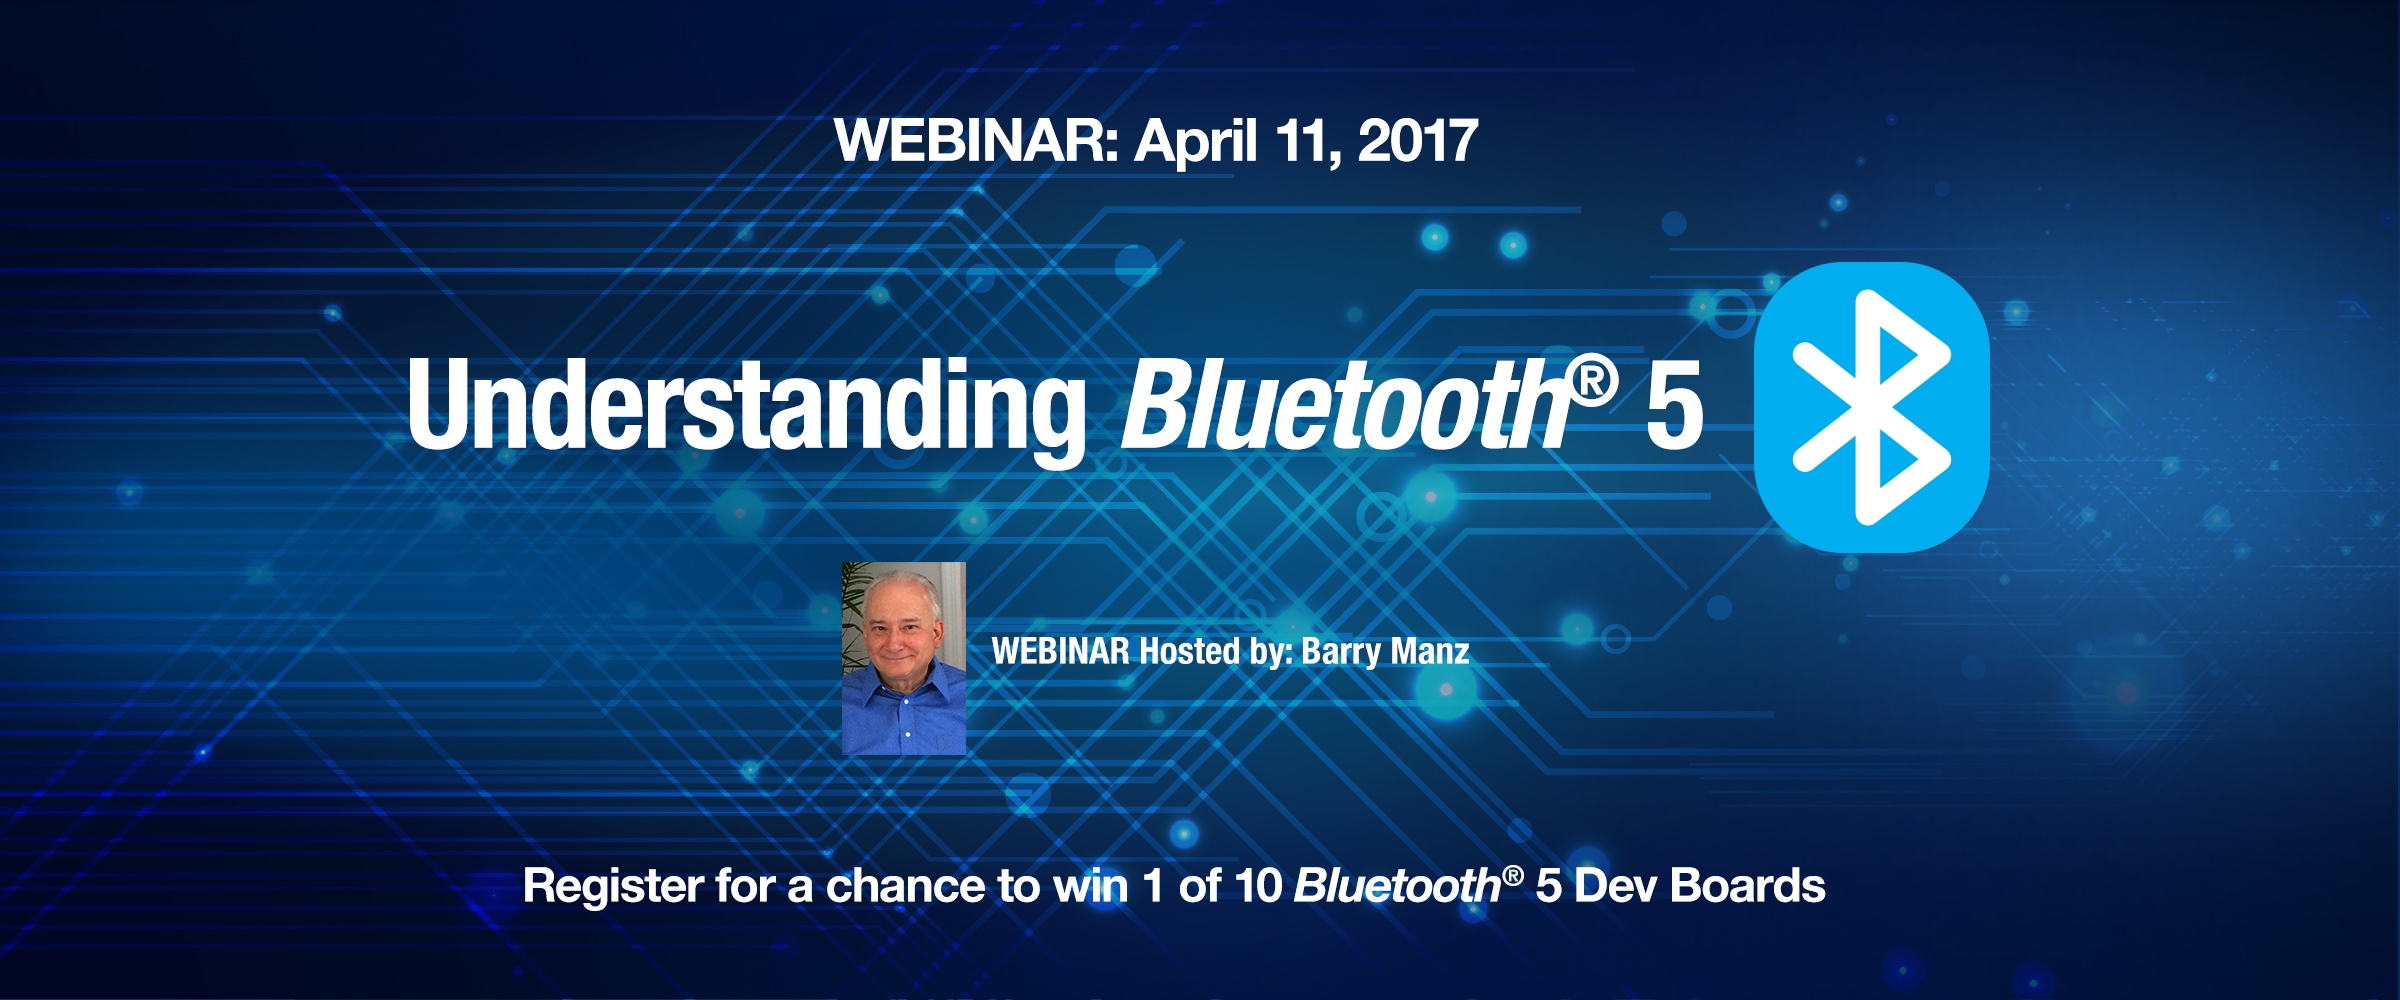 Mouser Electronics to Host Webinar on Bluetooth 5 Developments